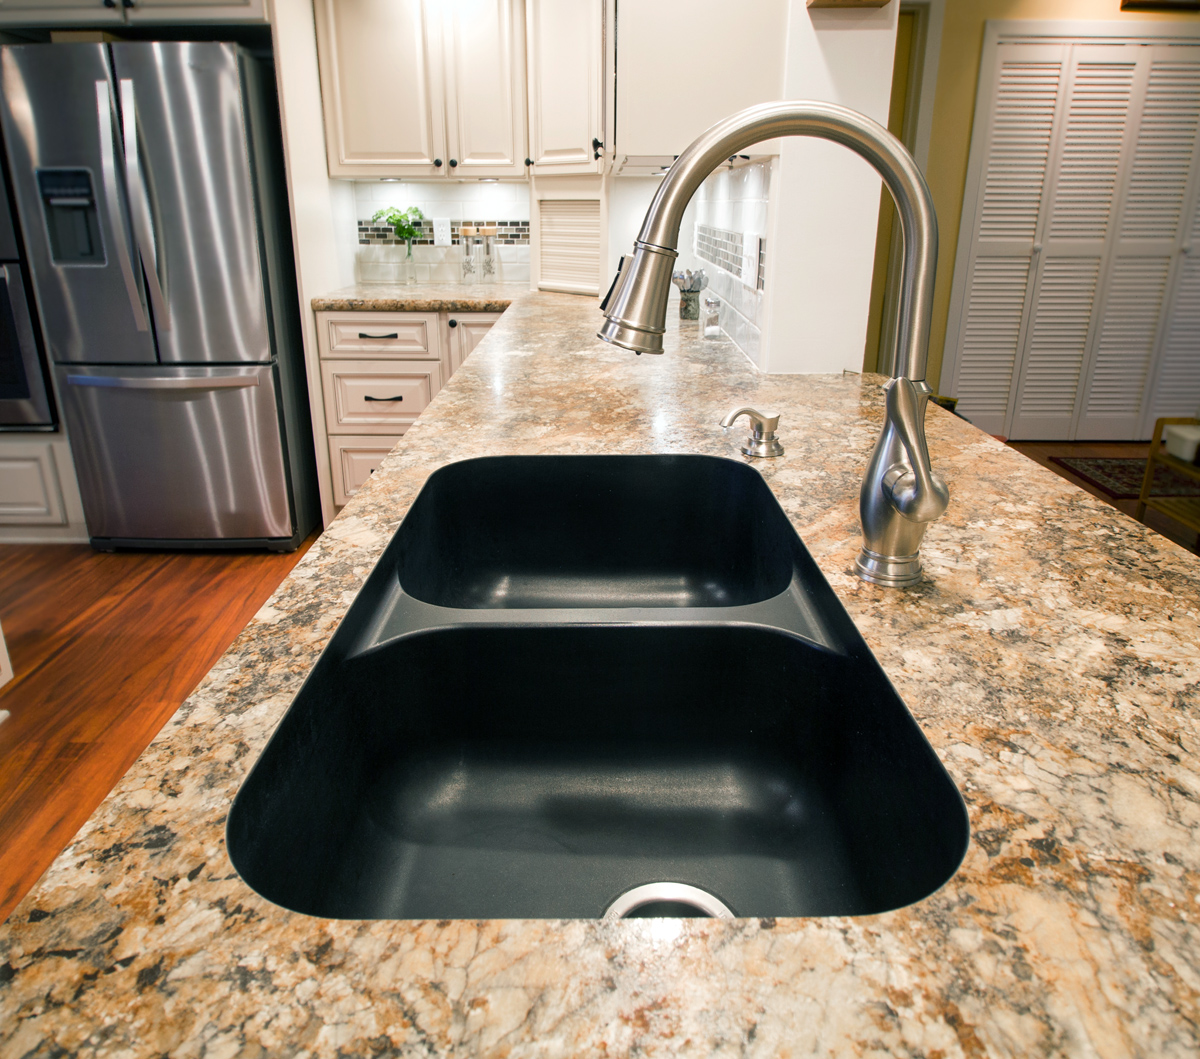 undermount,sink,faucet,countertop,counter,granite,custom,cabinet,spice,rack,cutting,board,drawers,remodel,install